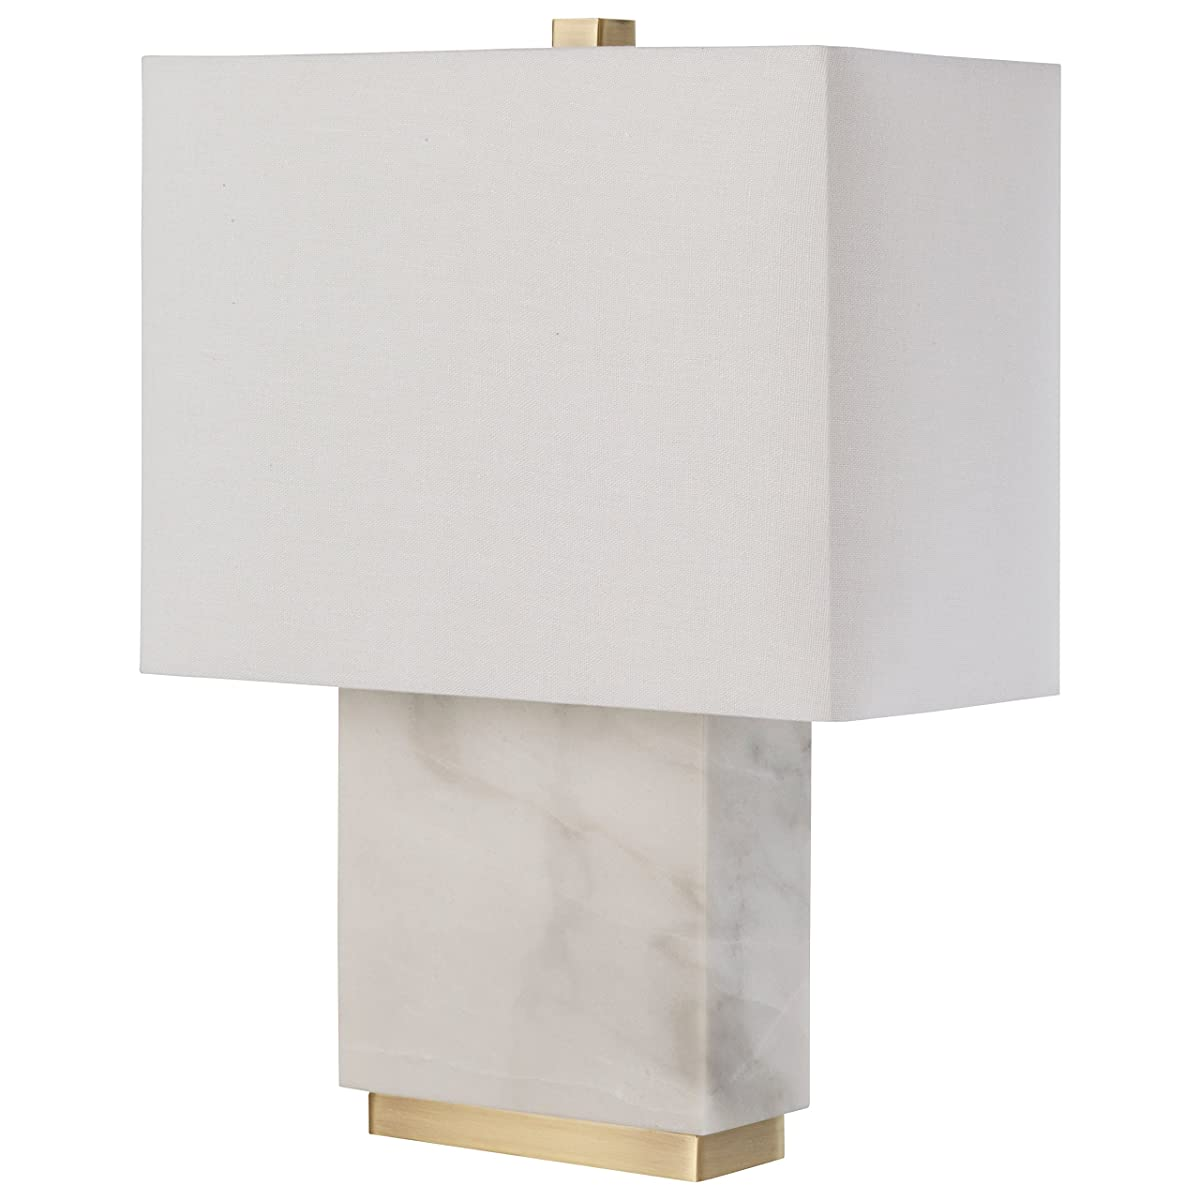 "Rivet Mid-Century Marble and Brass Table Lamp, With Bulb, 17"" x 6.5"" x 13.5"""